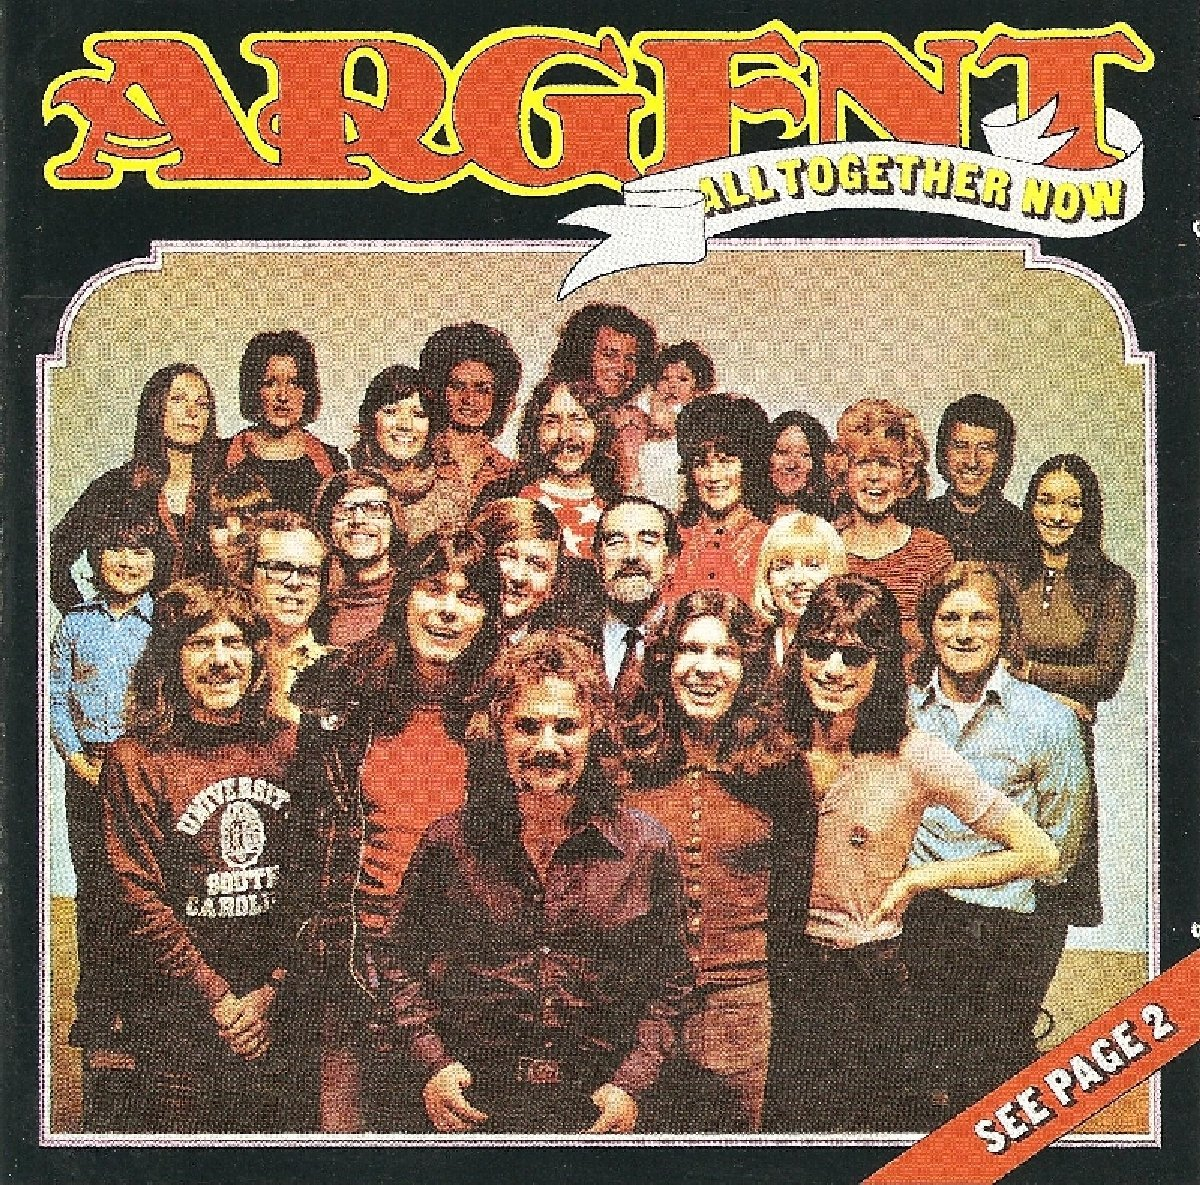 Argent. All Together Now